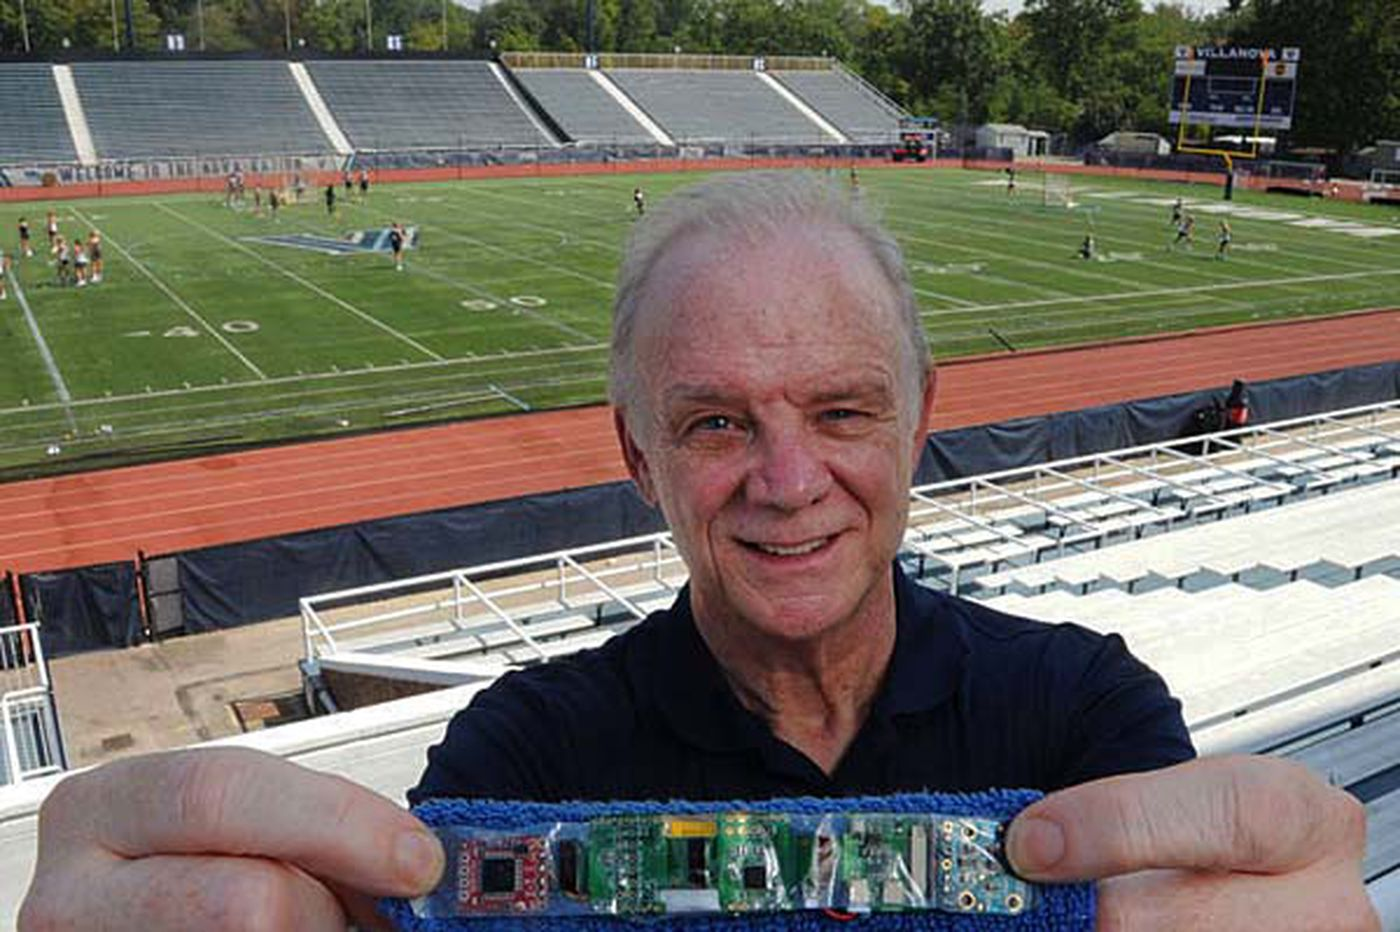 A Villanova inventor learns the ways of crowd-funding